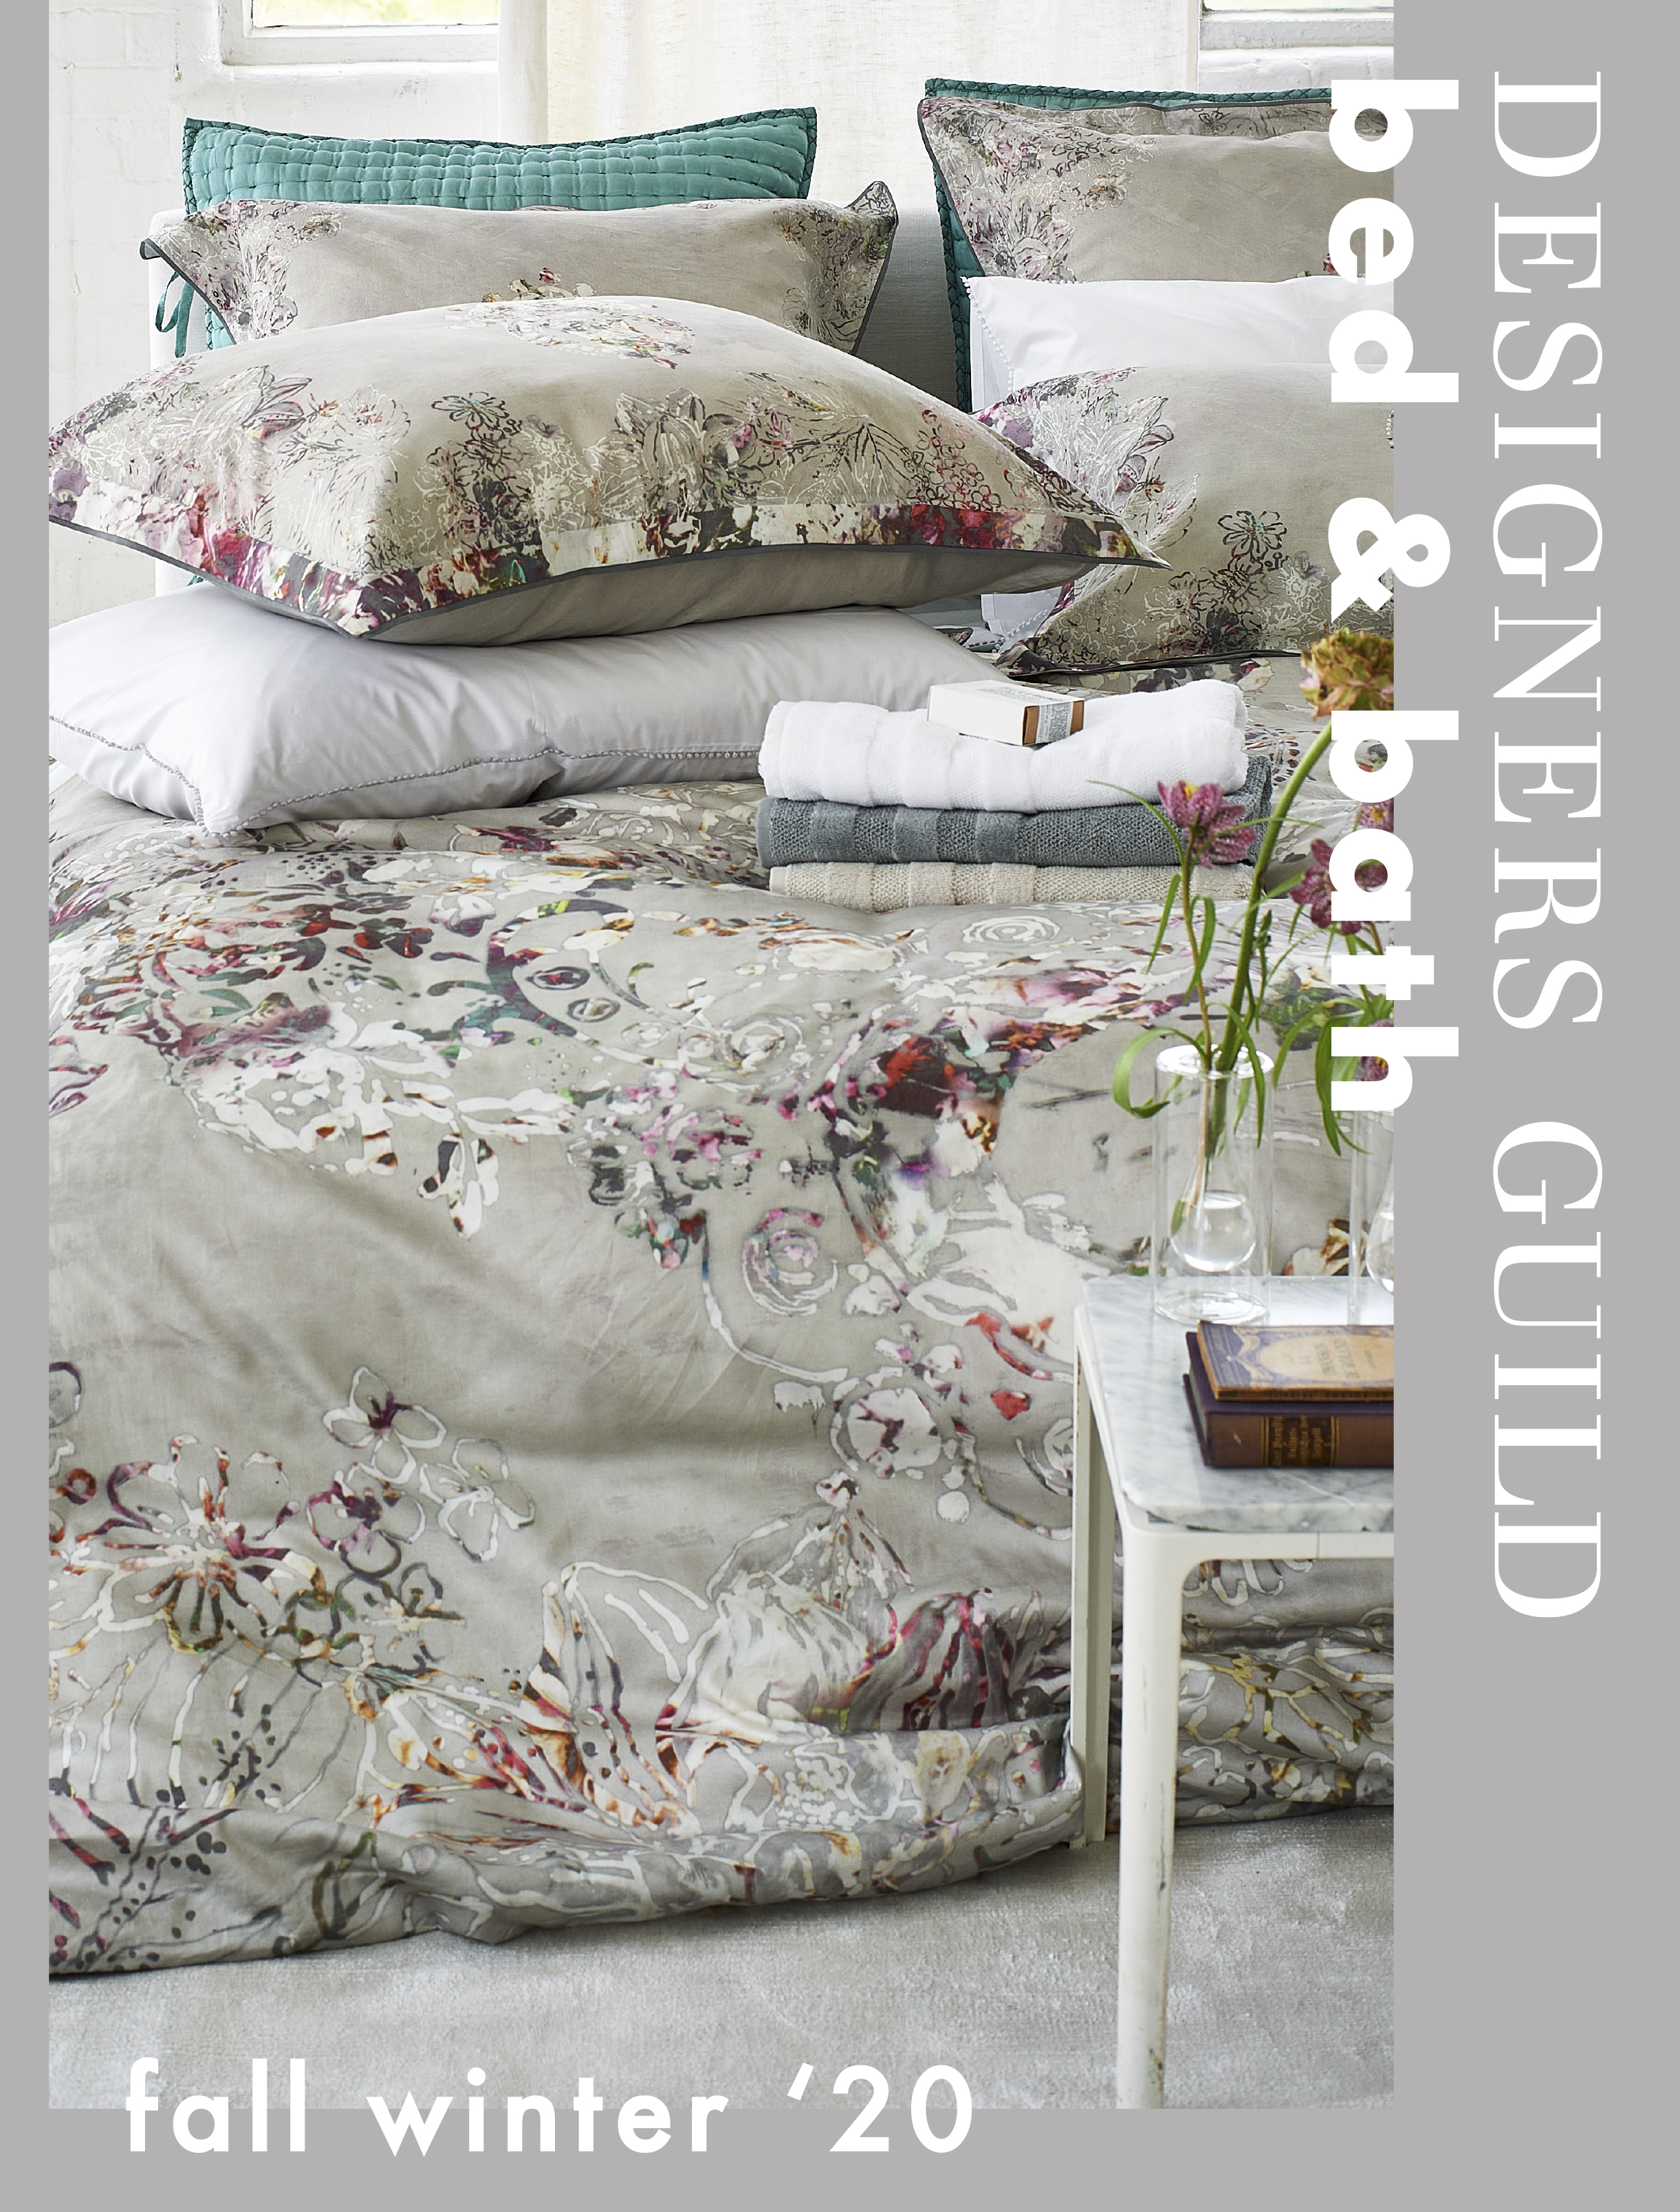 DESIGNERS GUILD BED & BATH AUTUMN/WINTER 2020